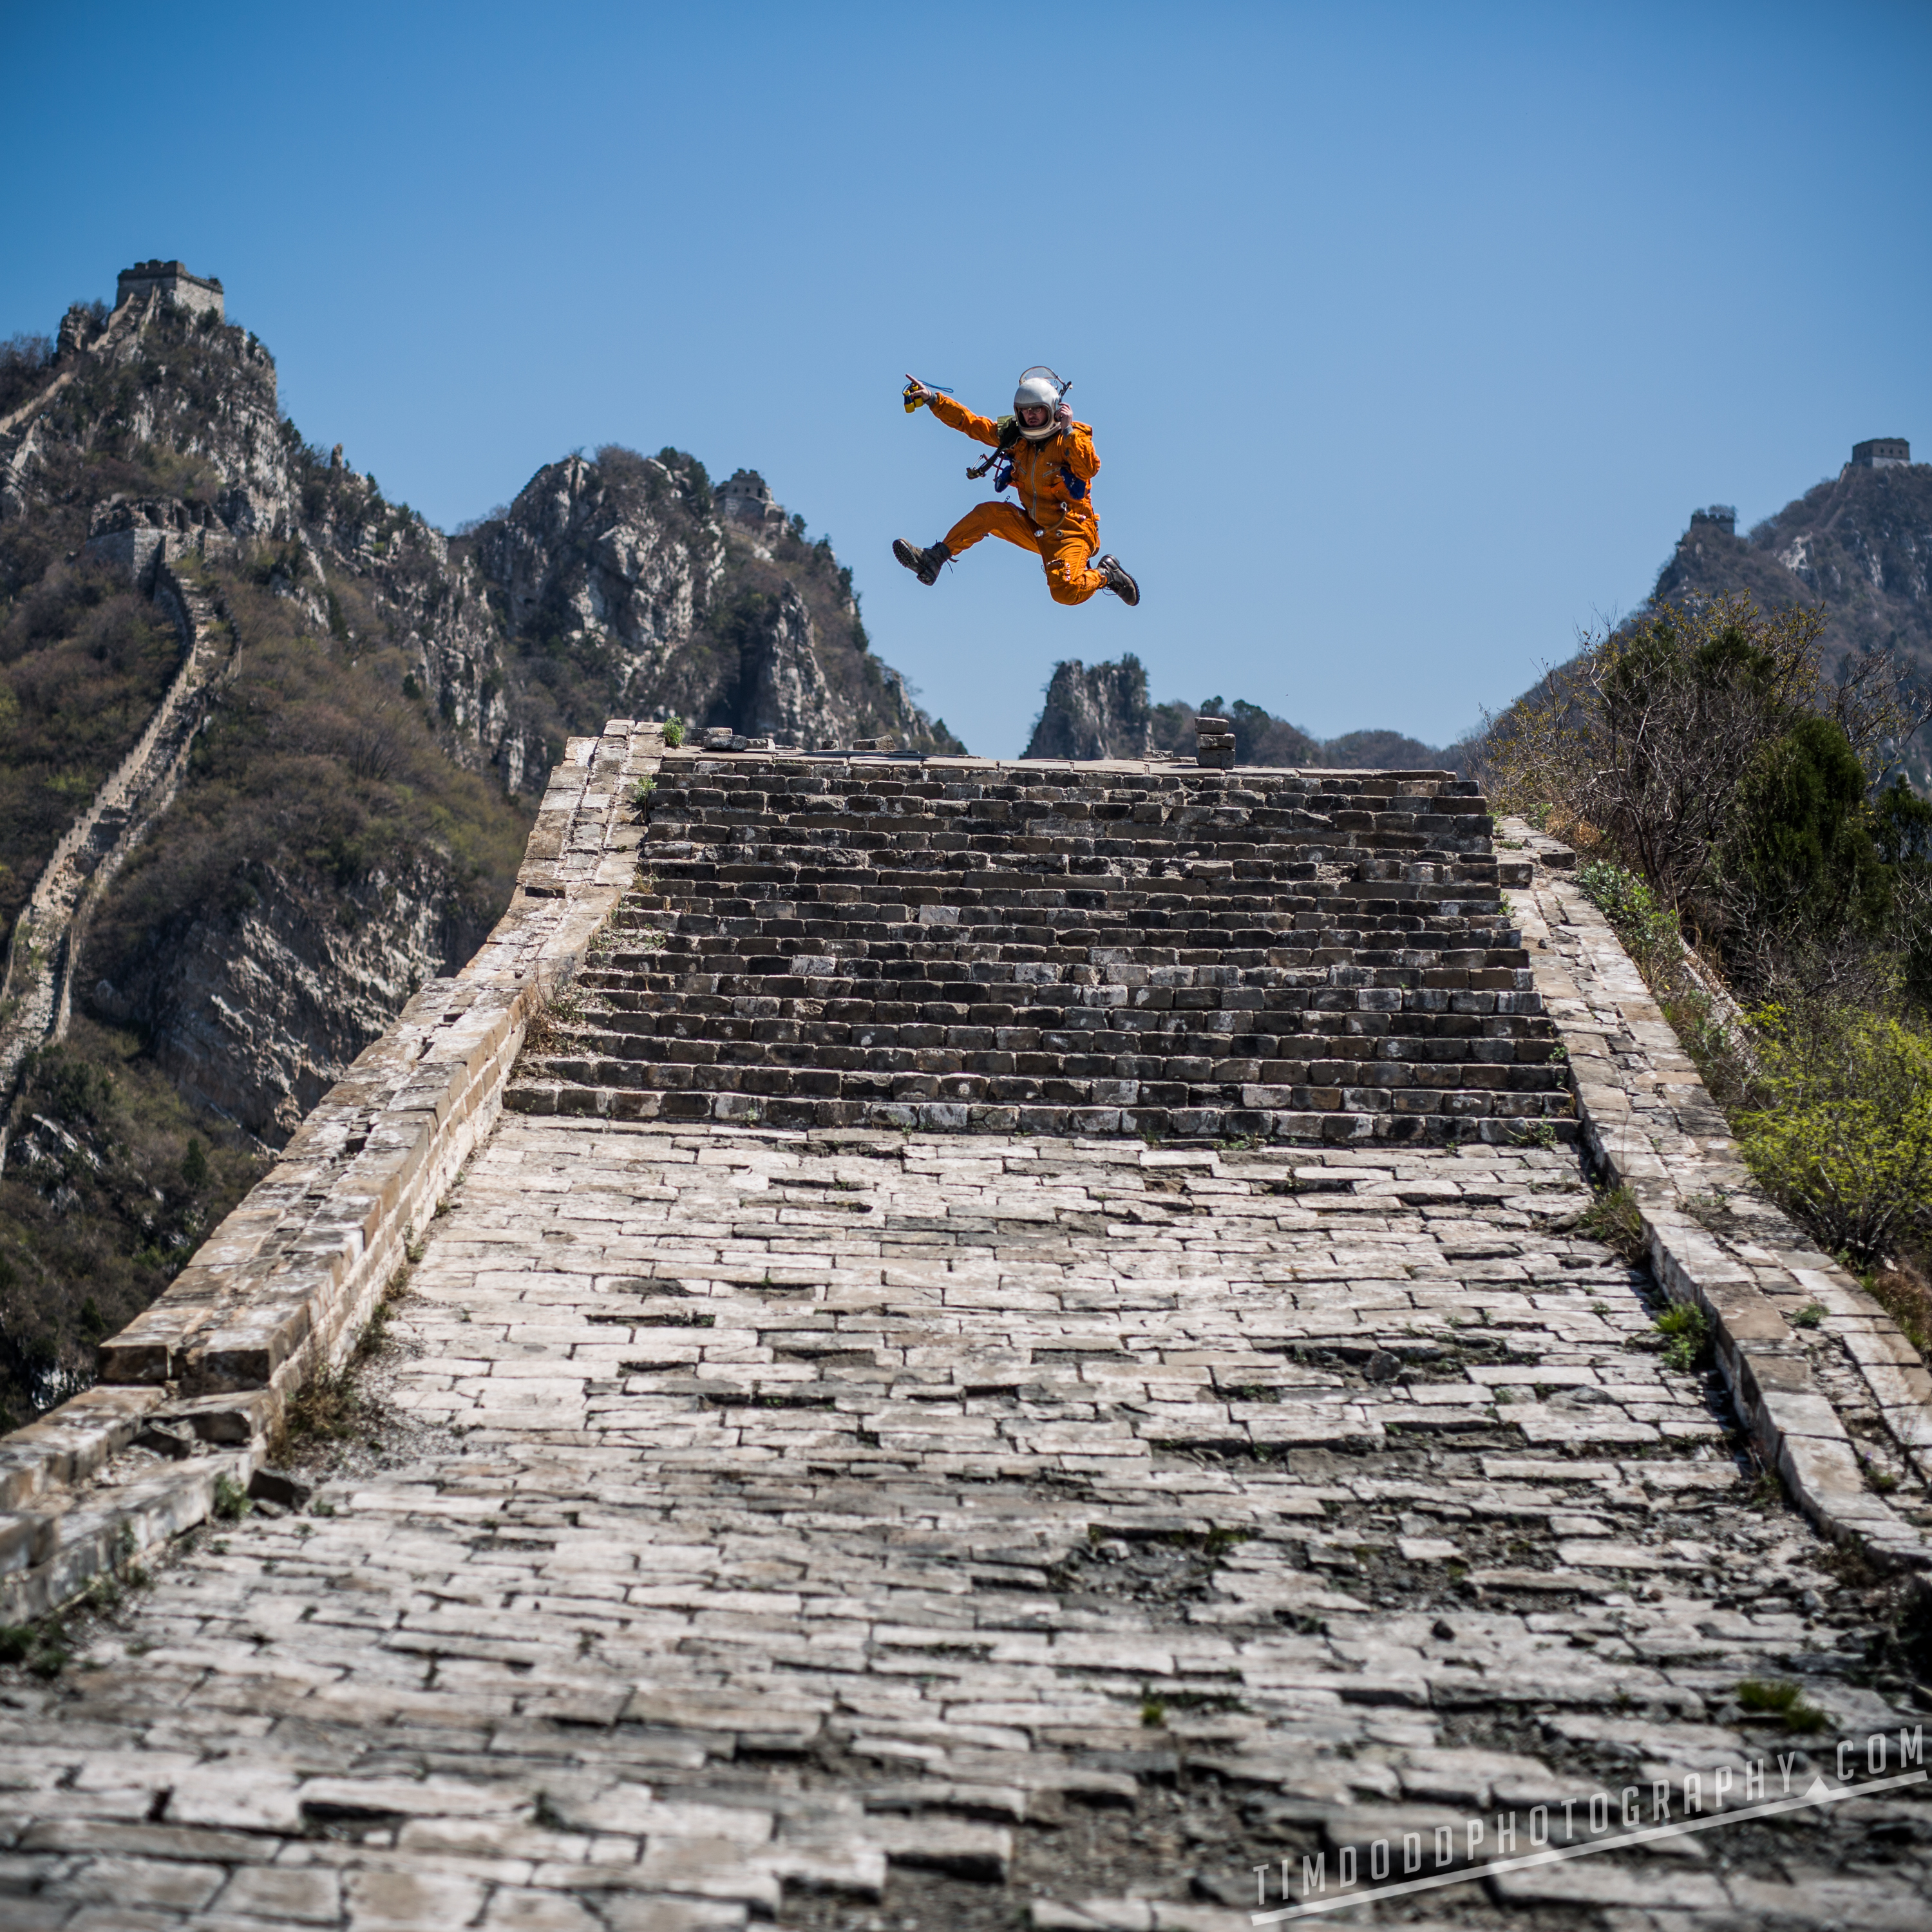 Great Wall of china abandoned Jiu Shui Keng, Huairou Qu, Beijing Shi China best photography hiking tips tourism travel tourist where unrestored untouched ancient by Tim Dodd Photography Everyday Astronaut space suit cosmonaut